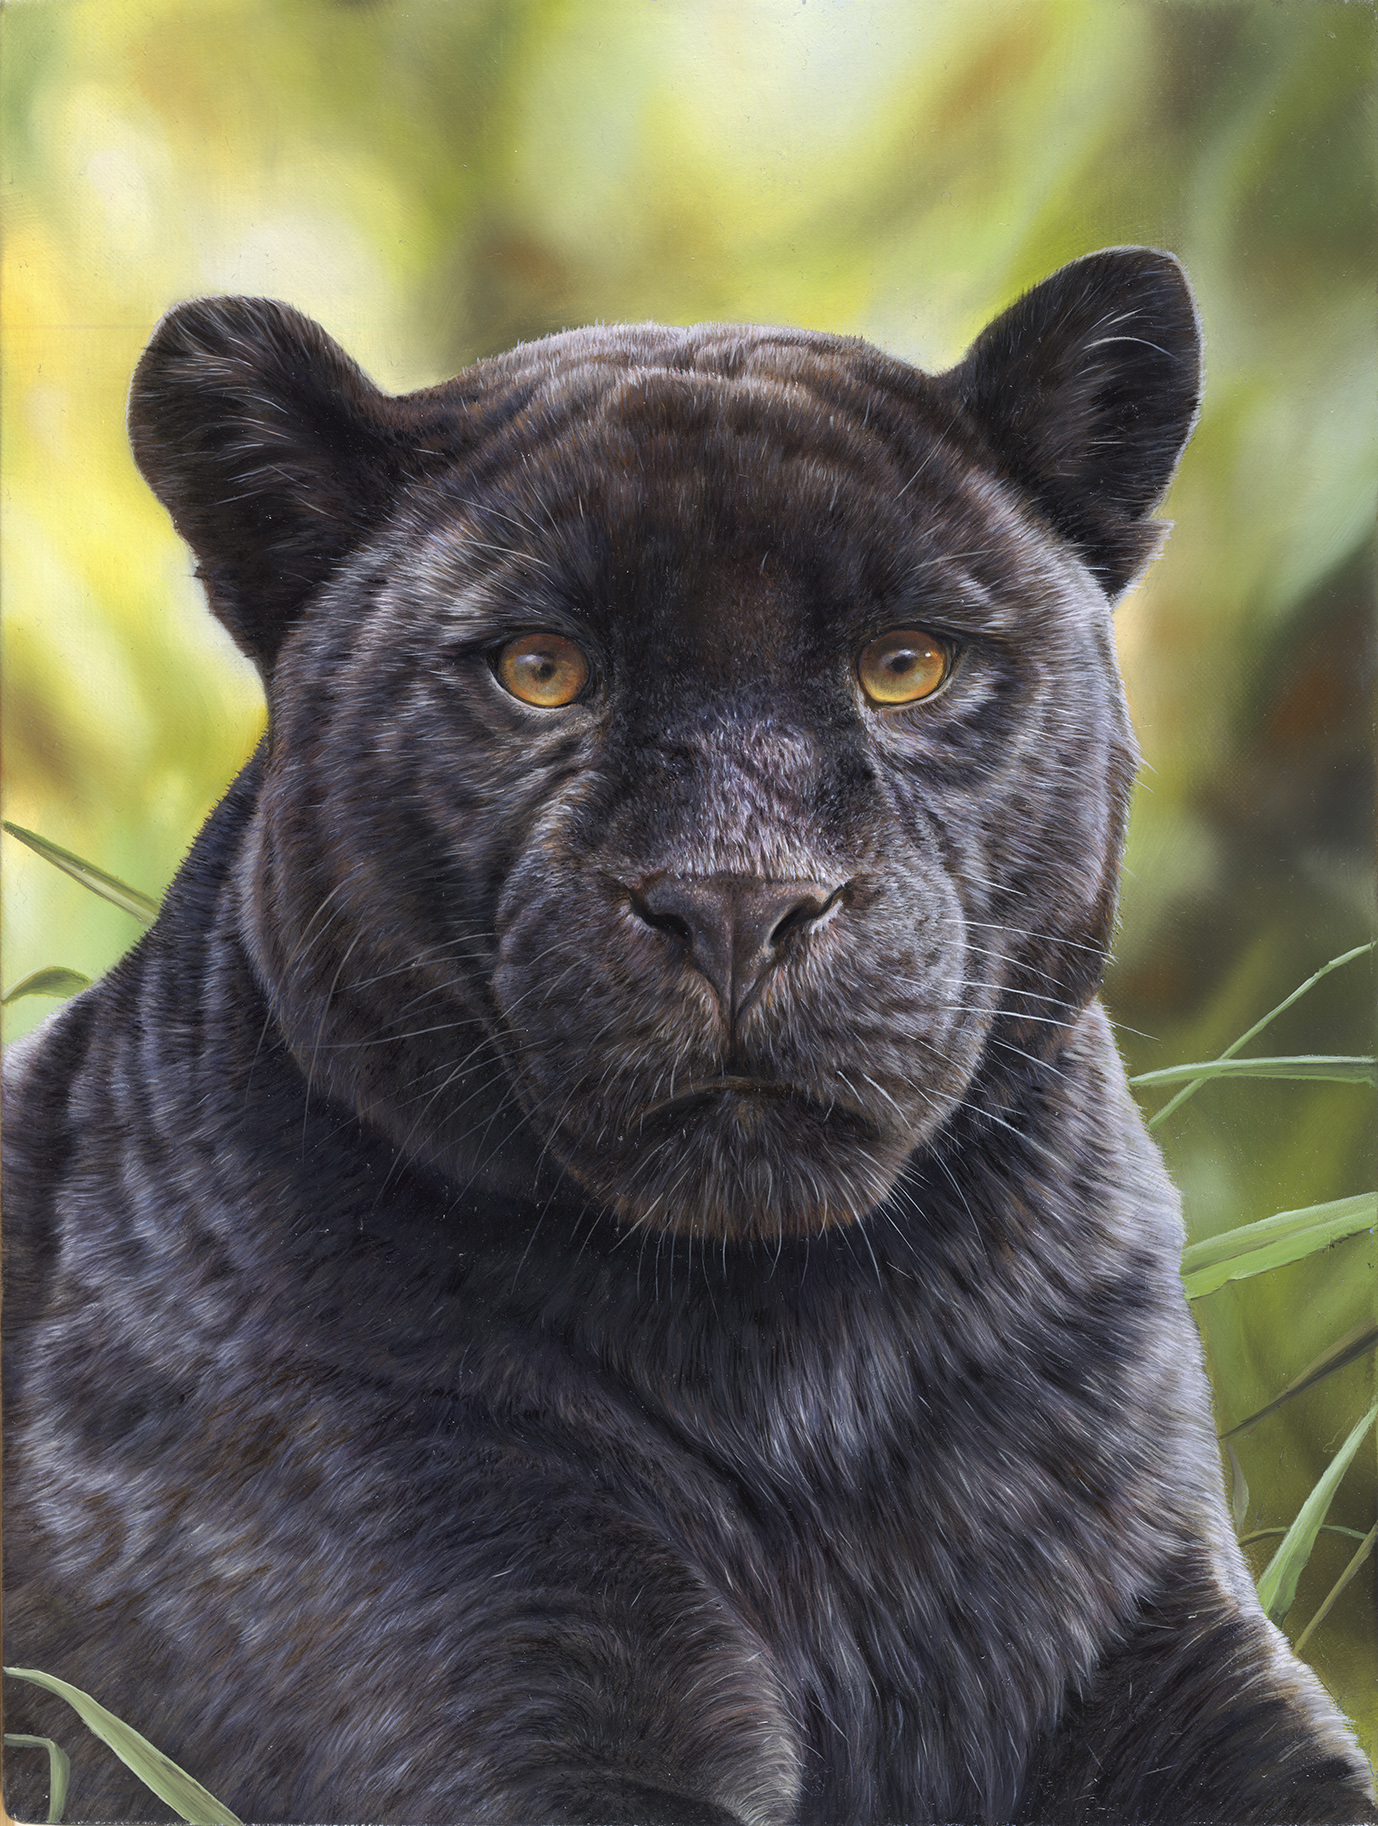 Black Panther. Oil painting. Original SOLD.